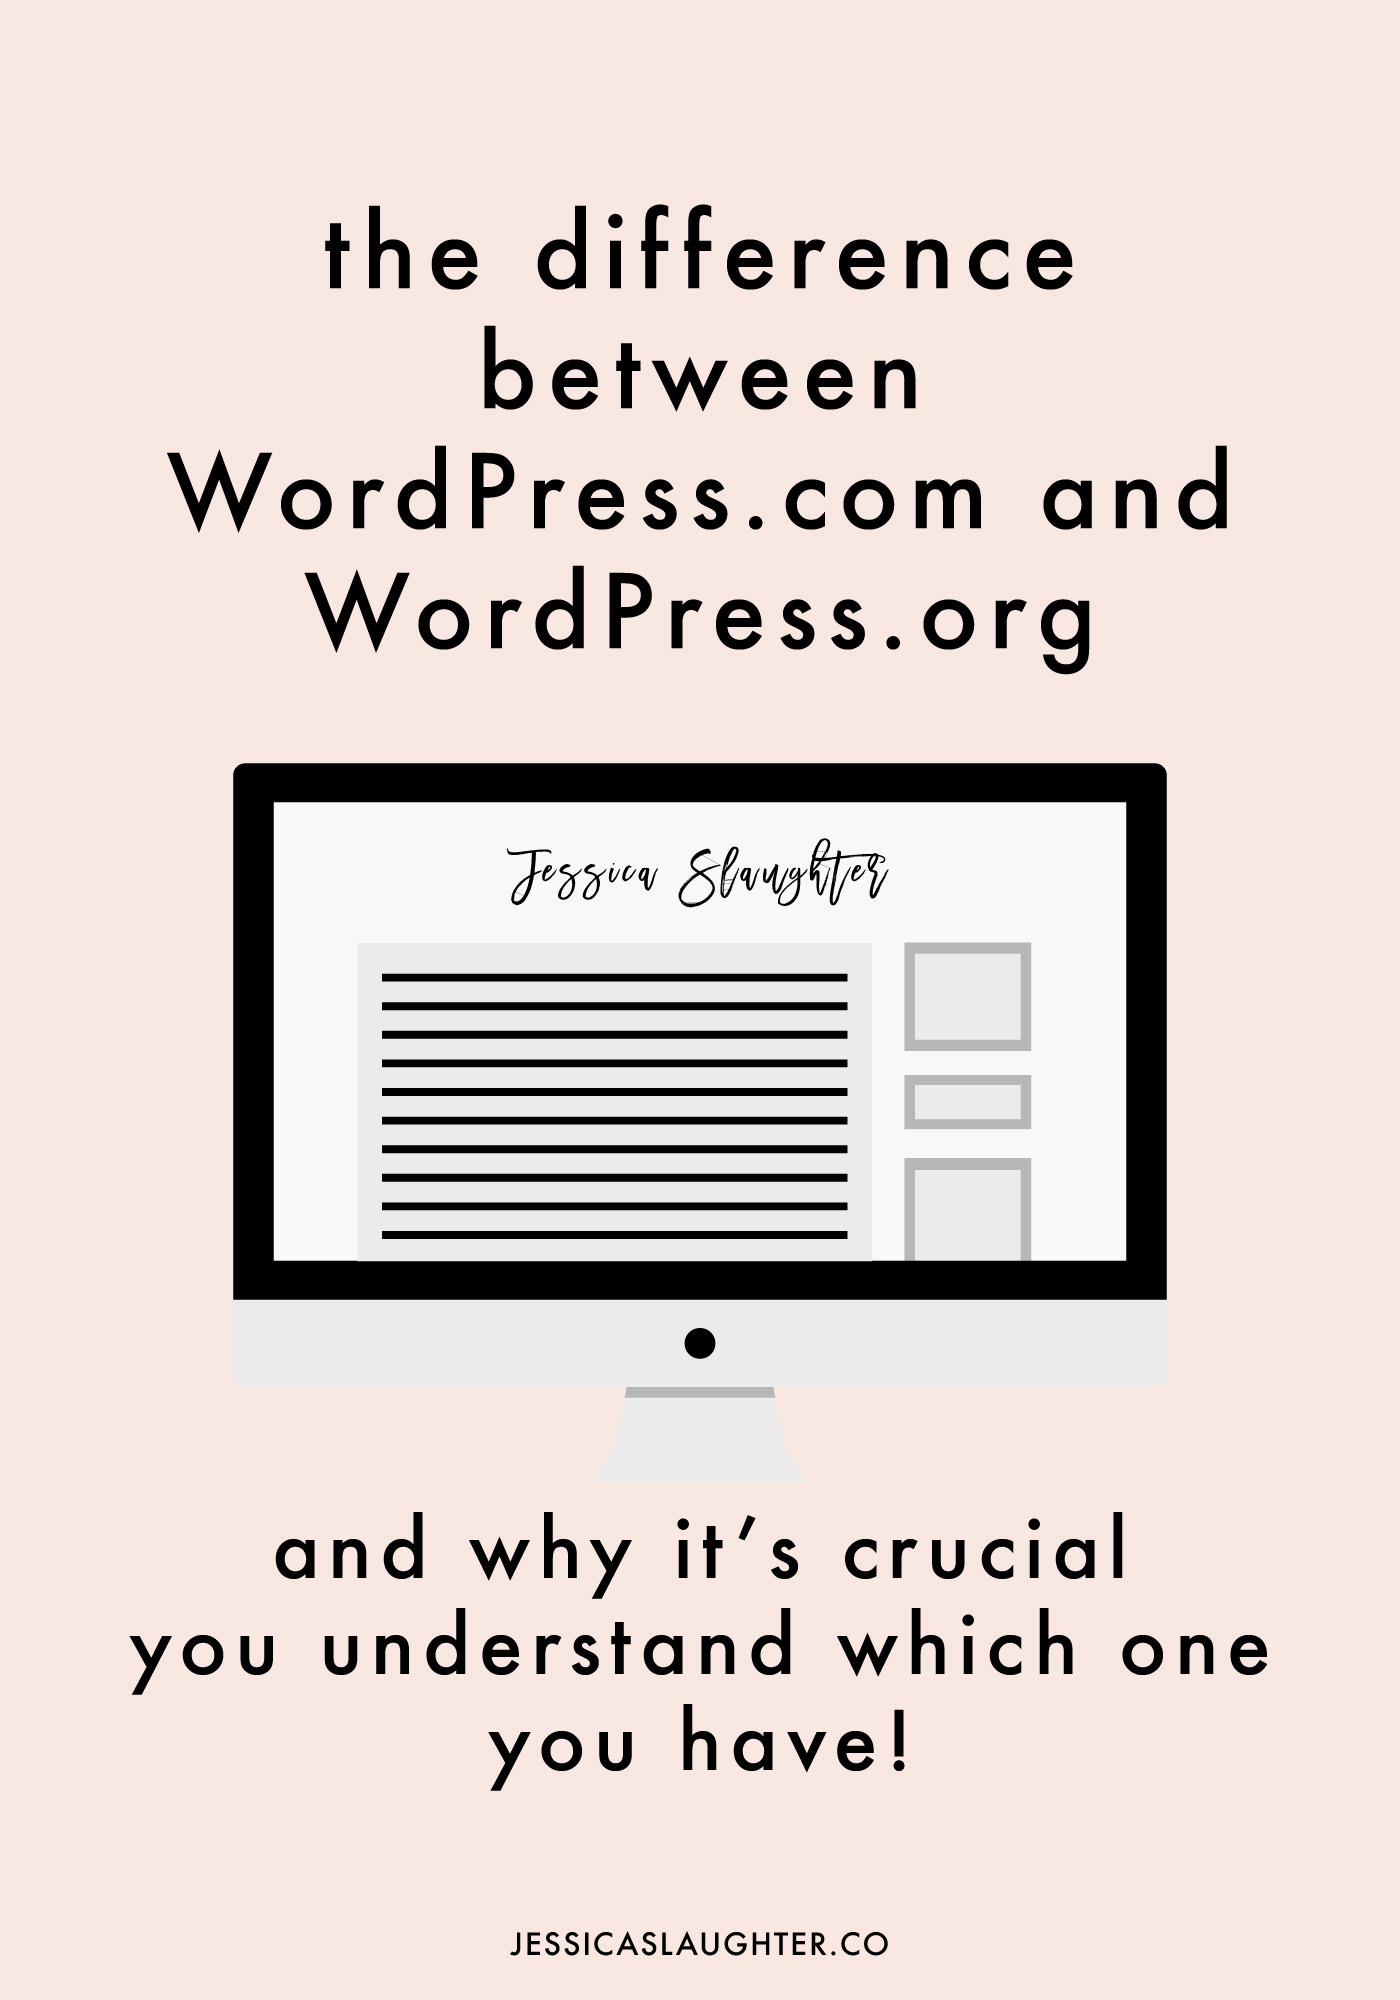 WordPress.com vs WordPress.org - Figure out which one you have, or which one you should be using.